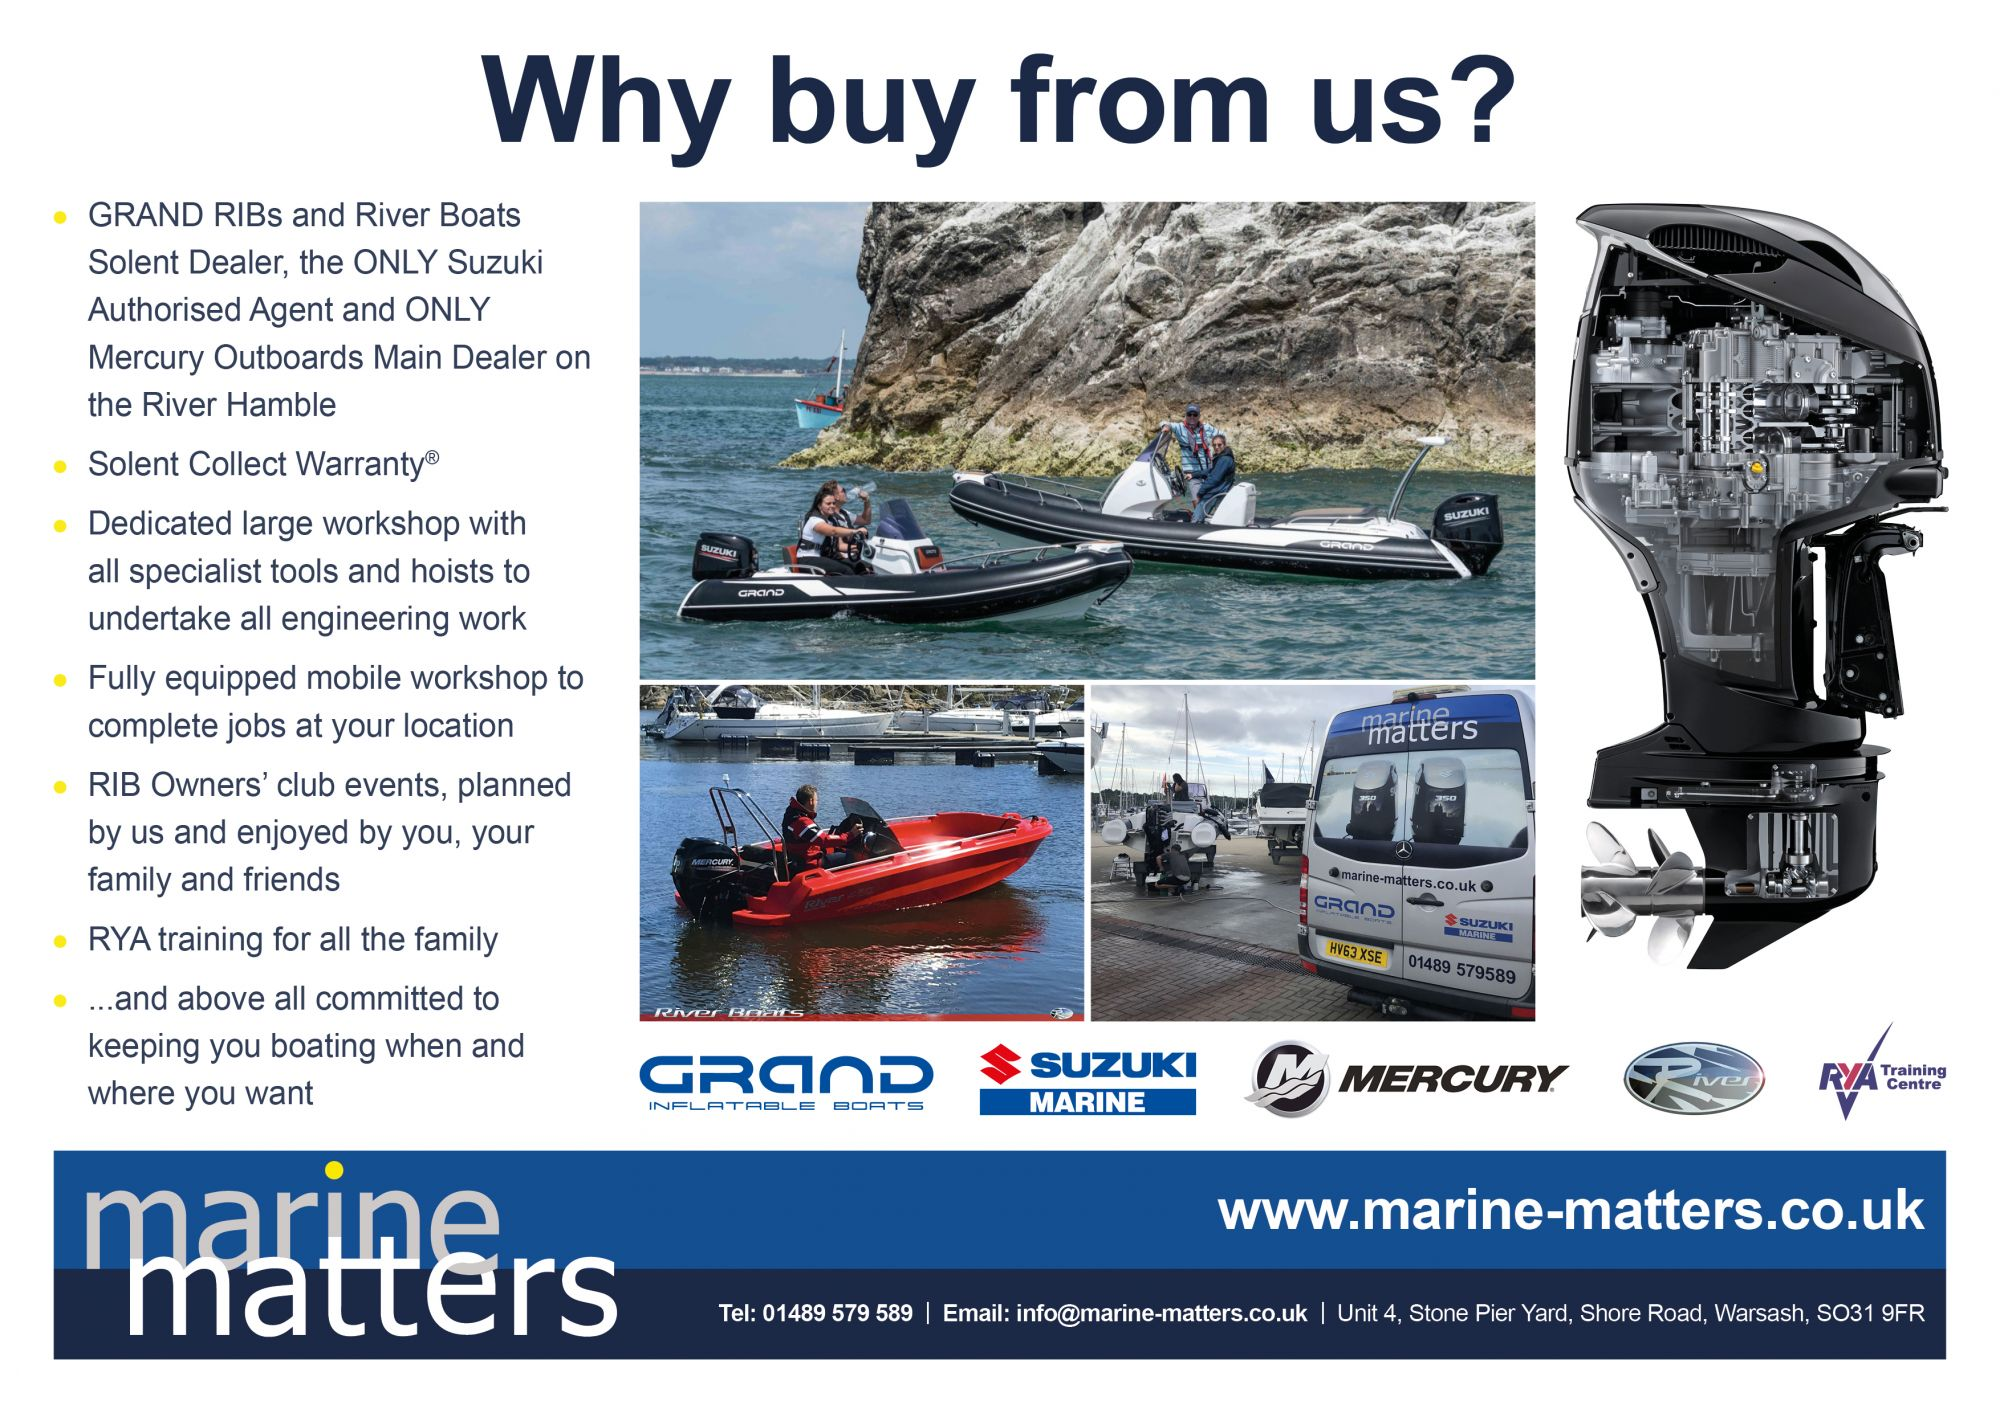 Why Buy From Marine Matters